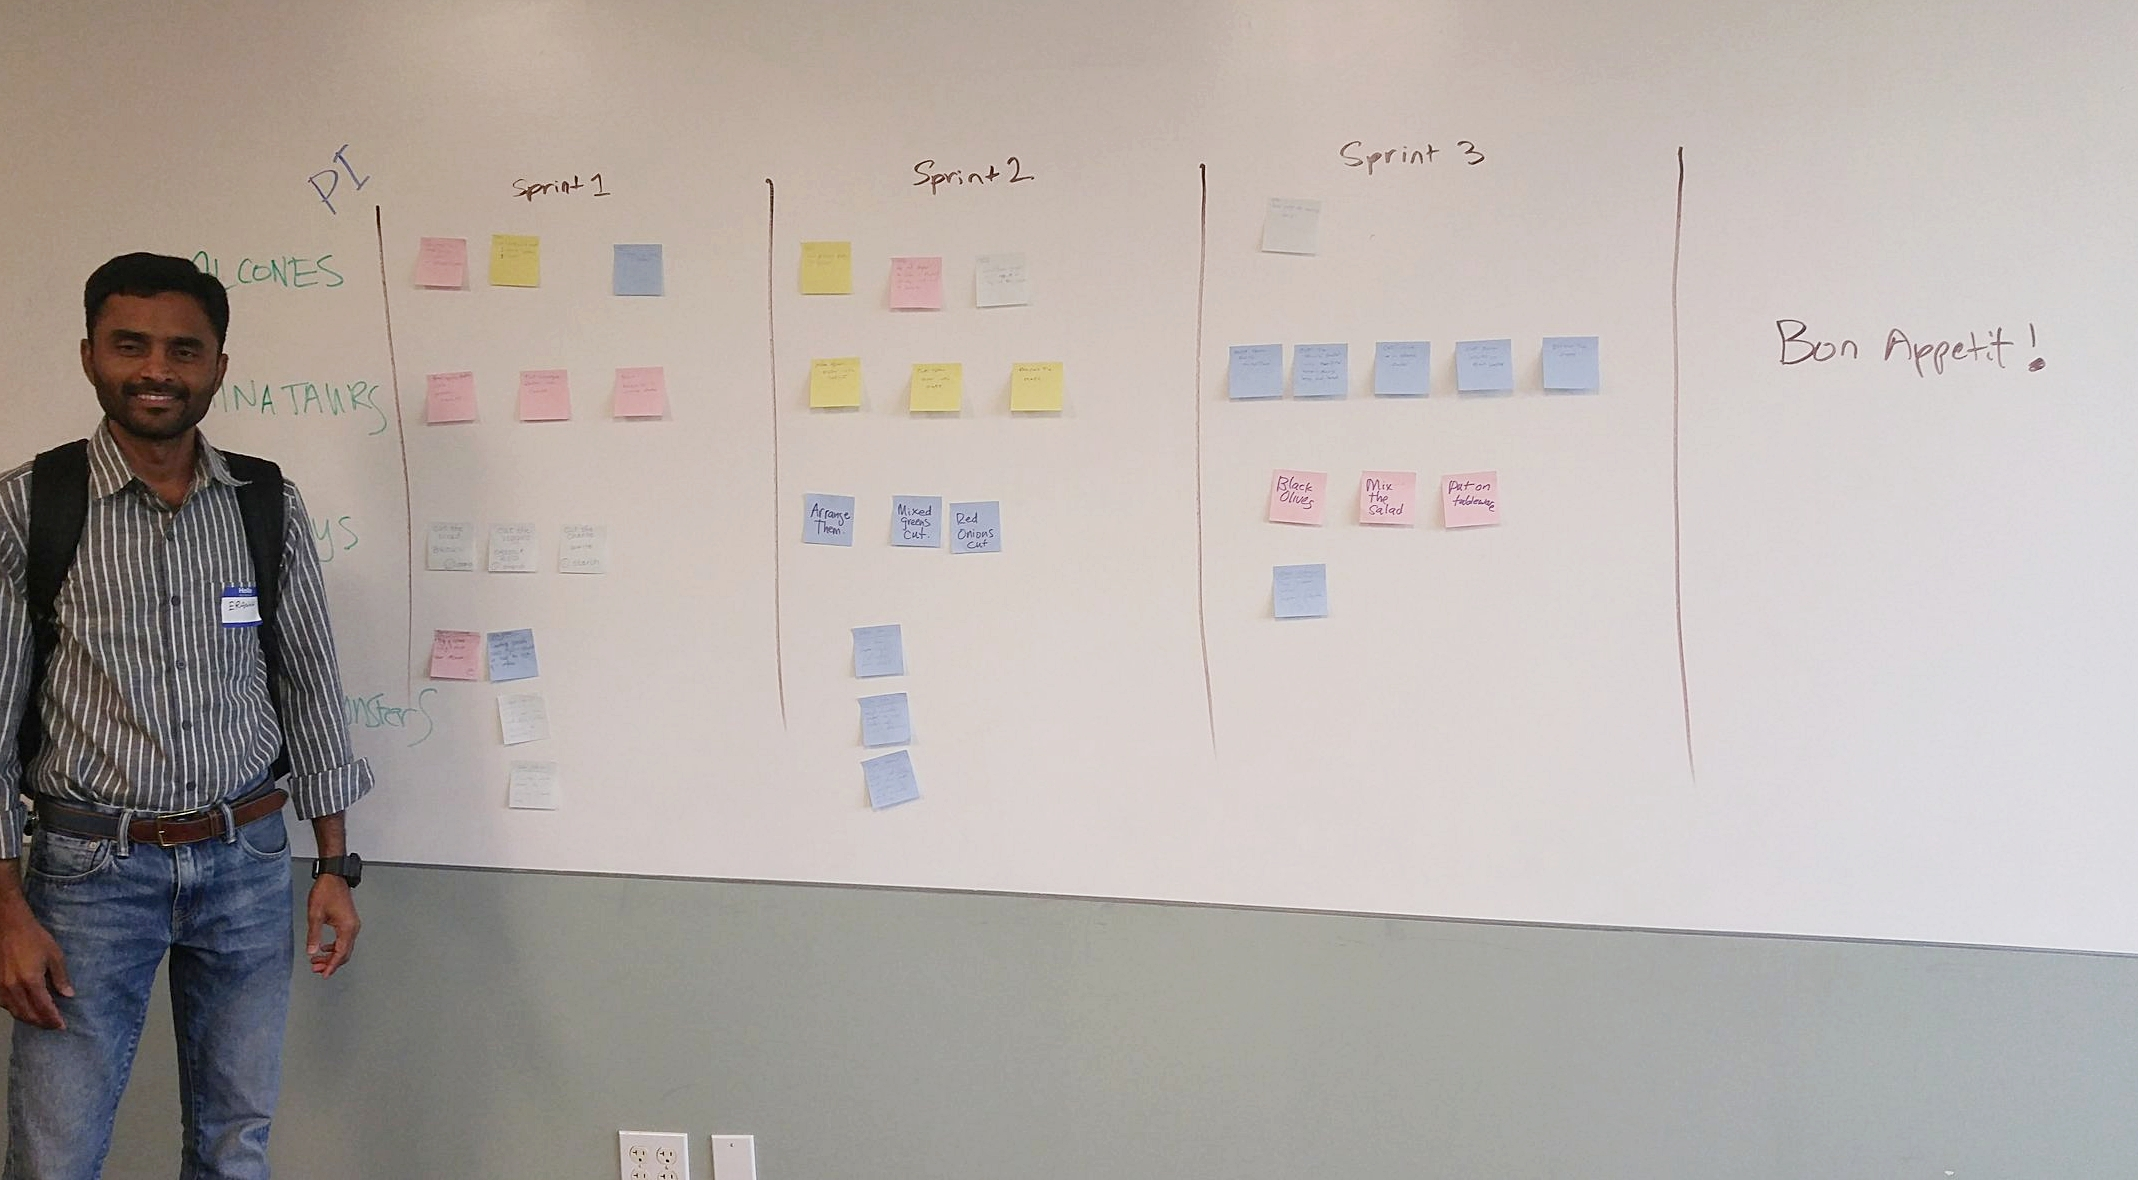 Here, we're training for organization of design sprints.